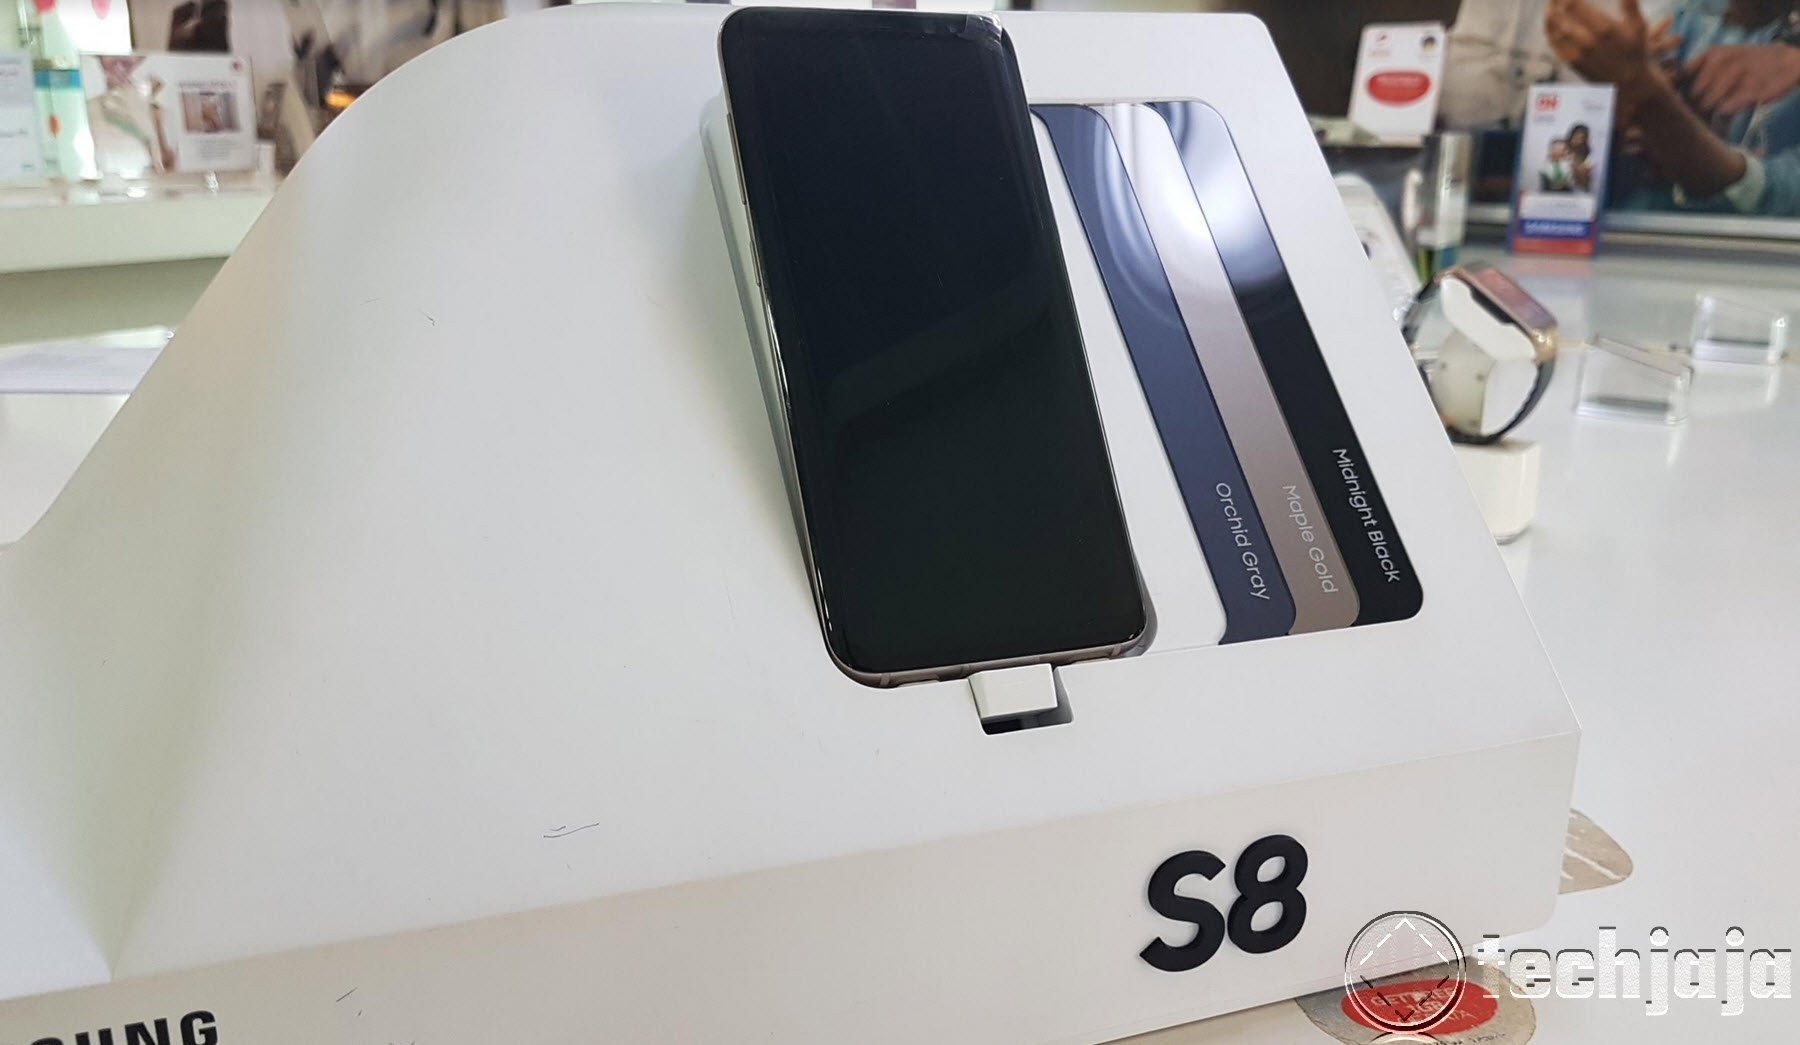 Galaxy S8 plus in store